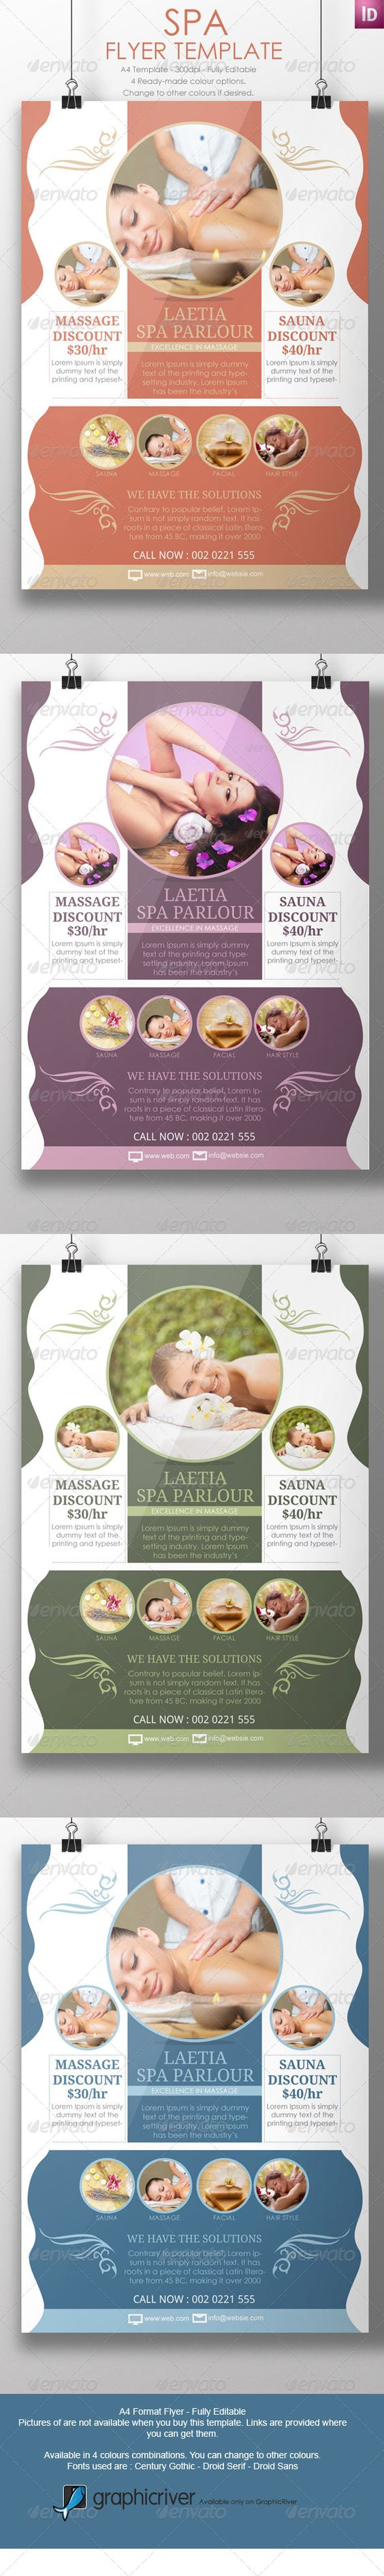 spa flyer template marketing flyer template and flyers spa marketing flyers